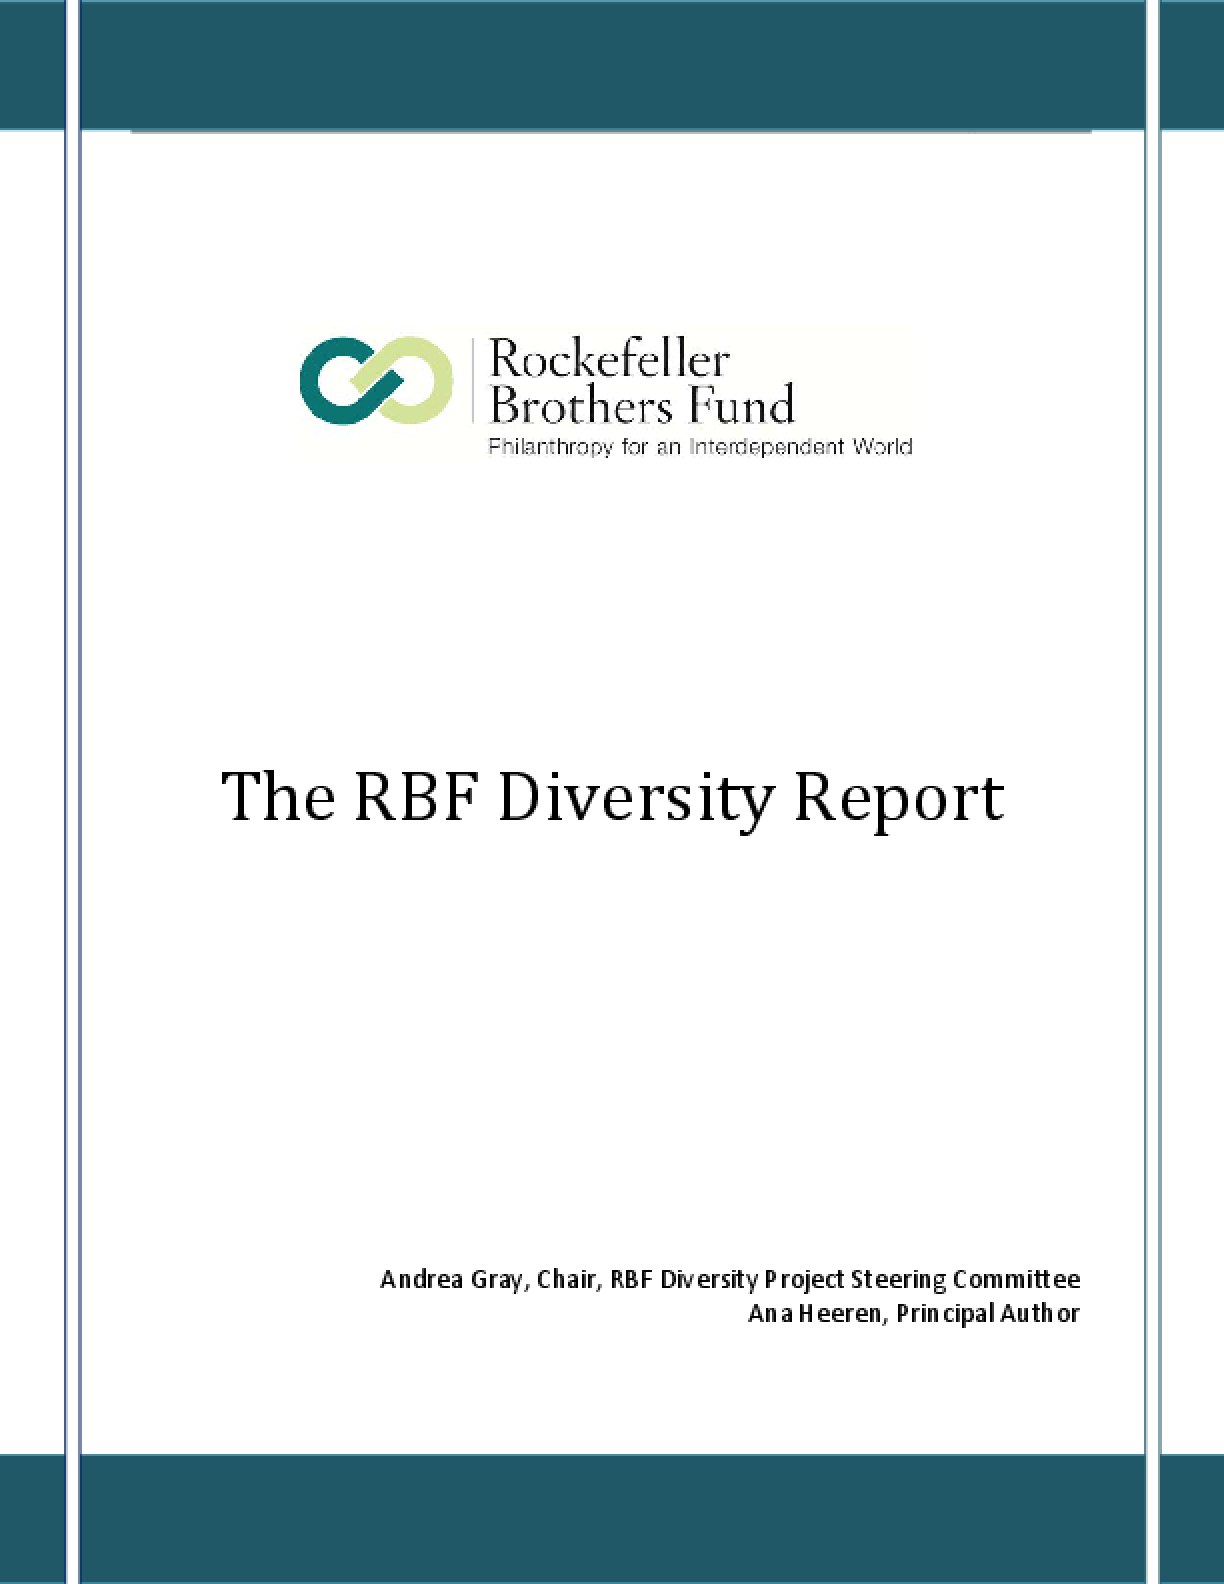 The RBF Diversity Report